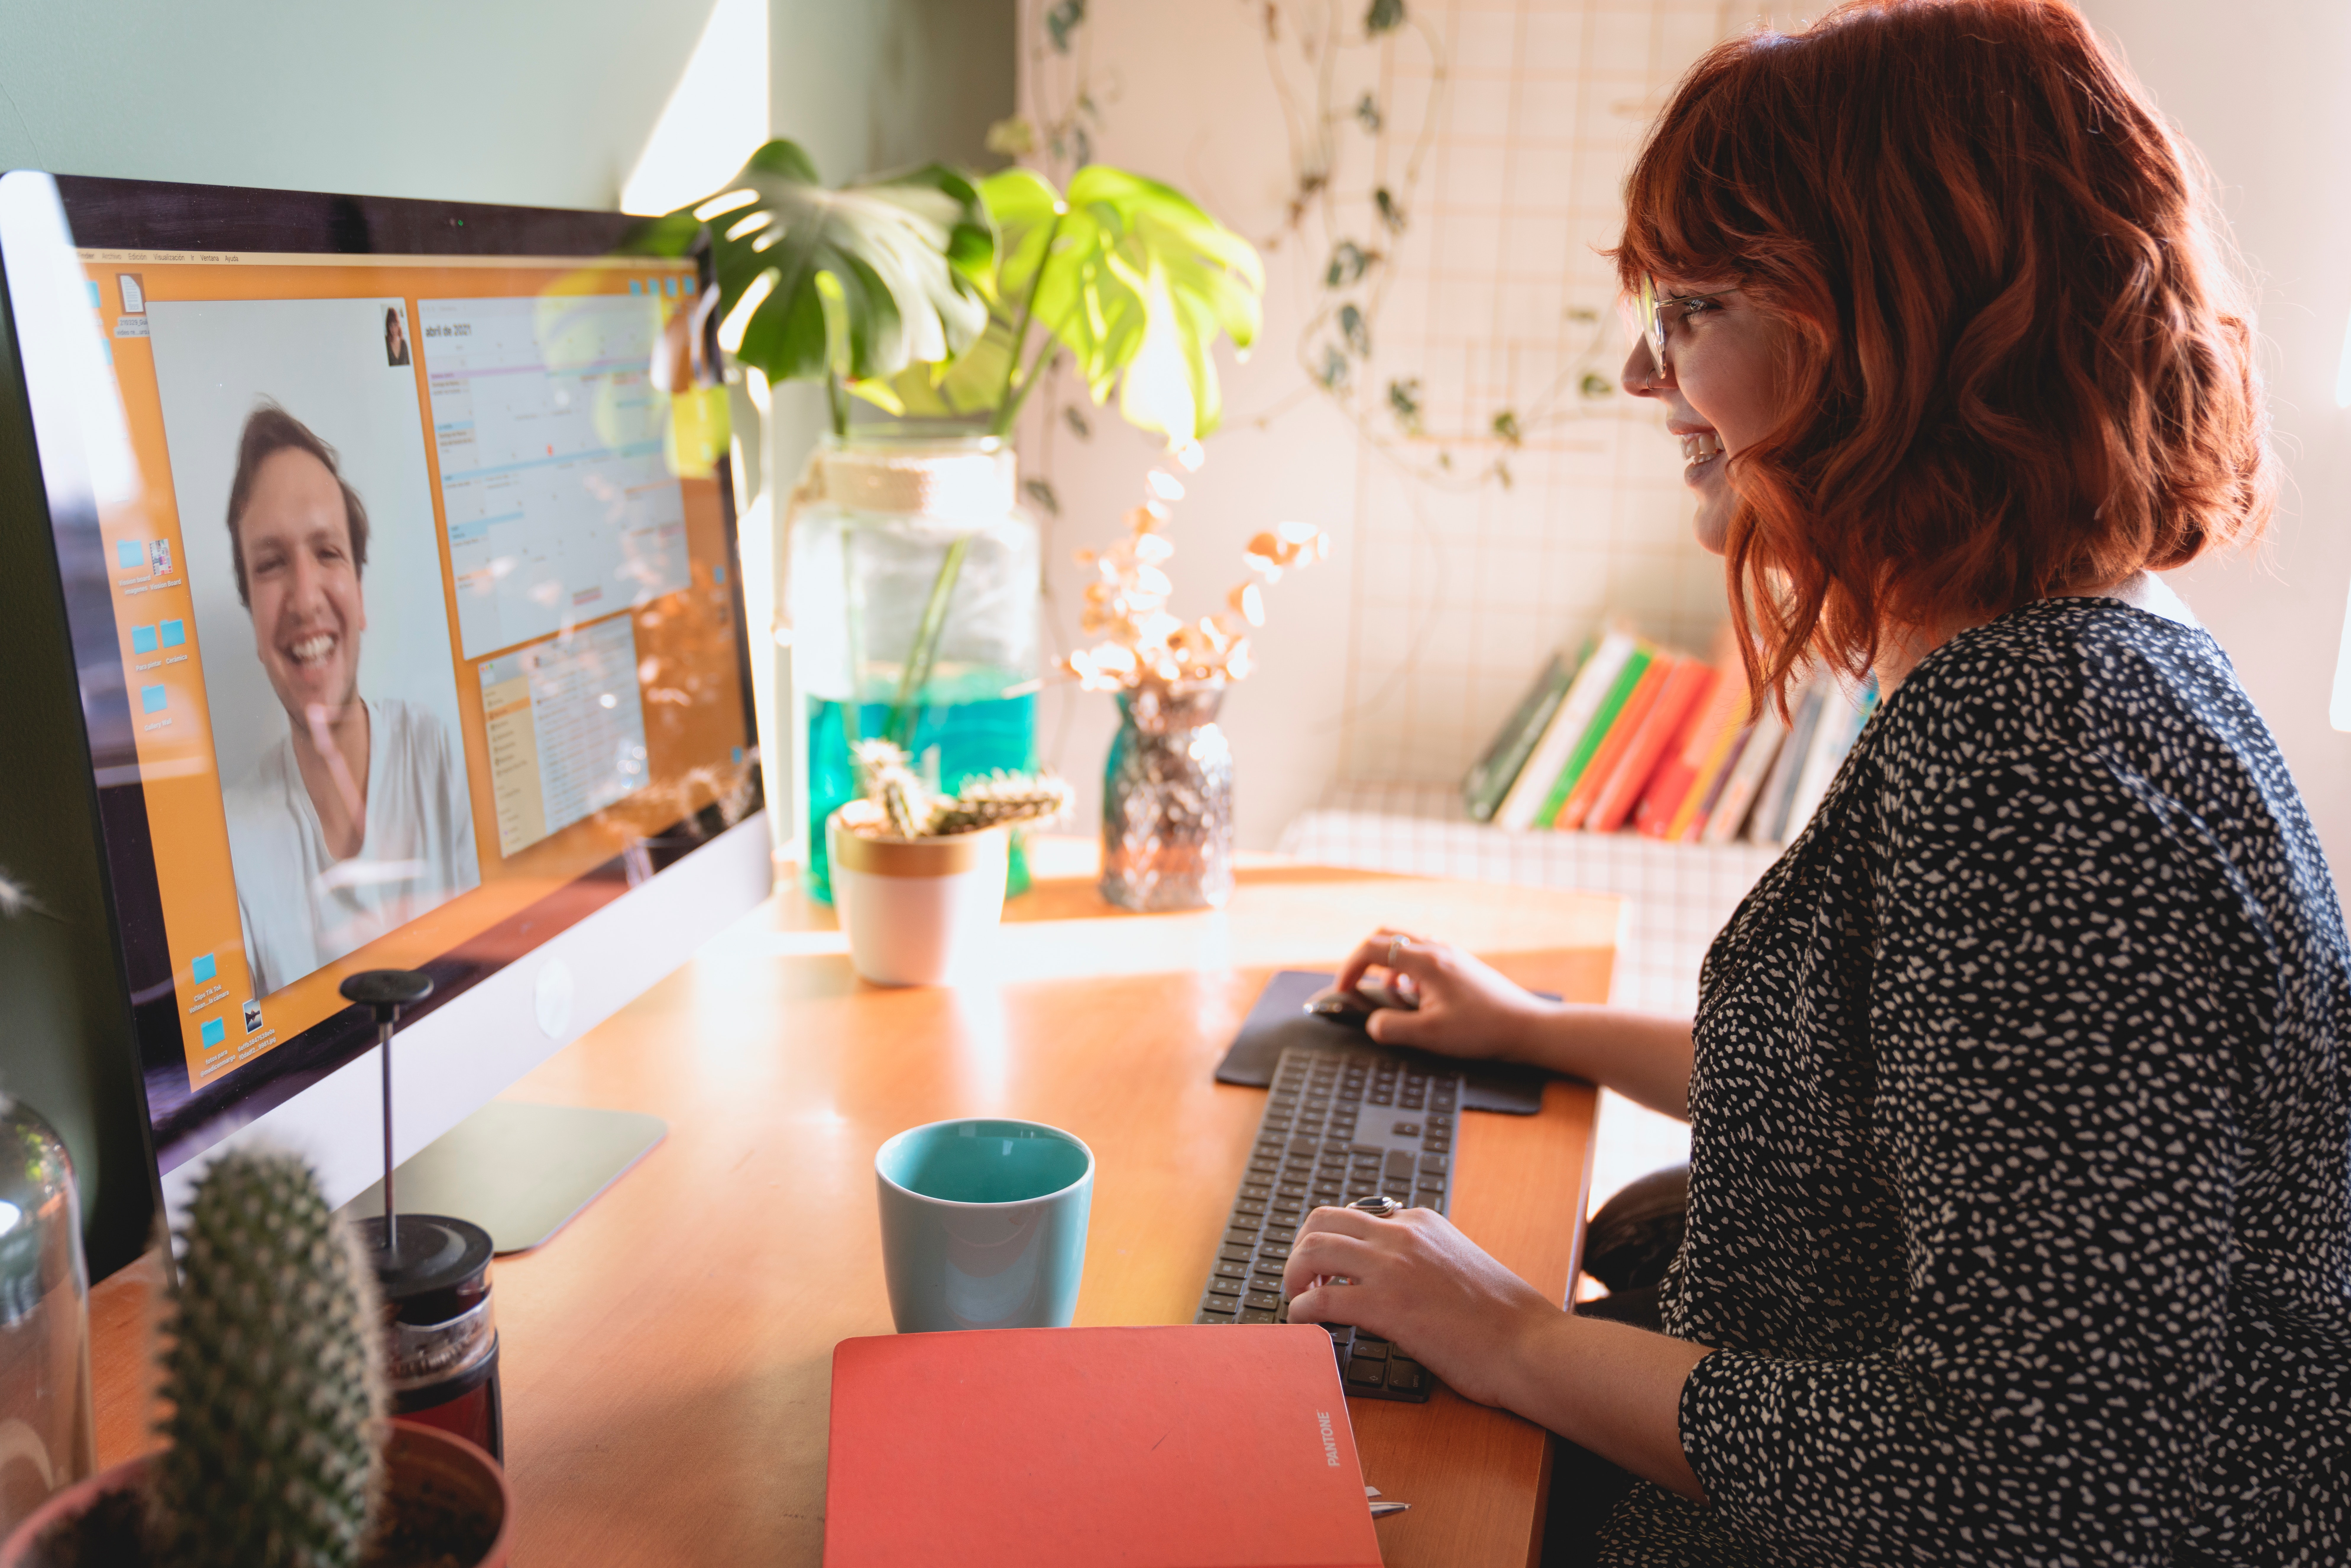 Prioritizing Mental Health for Remote and Digital Workforces